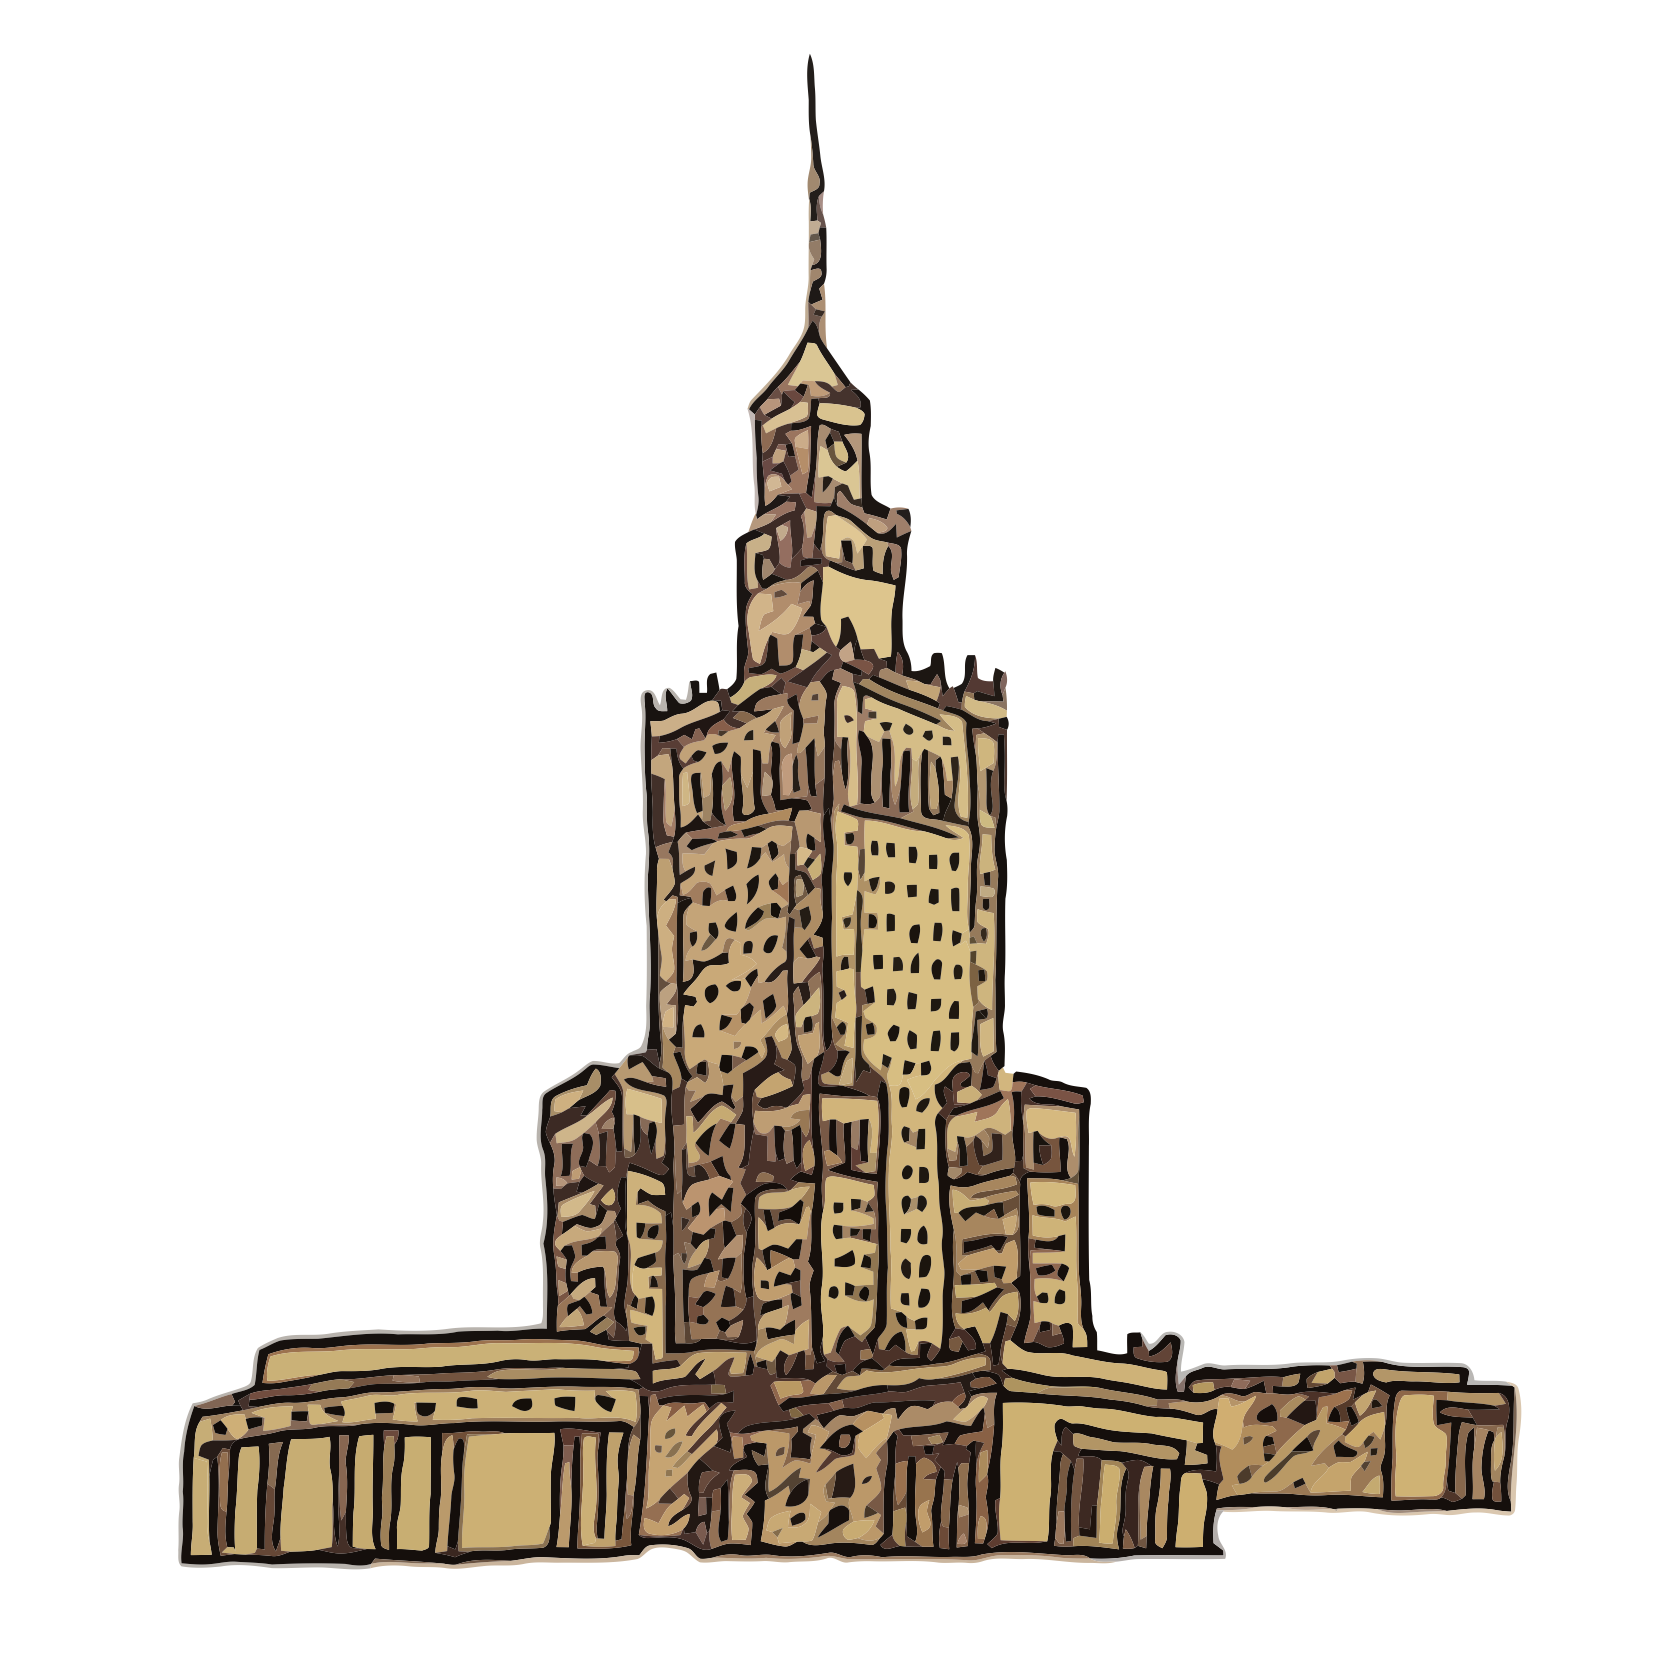 Polish - Palace of Culture and Science -PKiN - PKiN, art, draw, drawings, vectorized, vector, image, artwork, paints